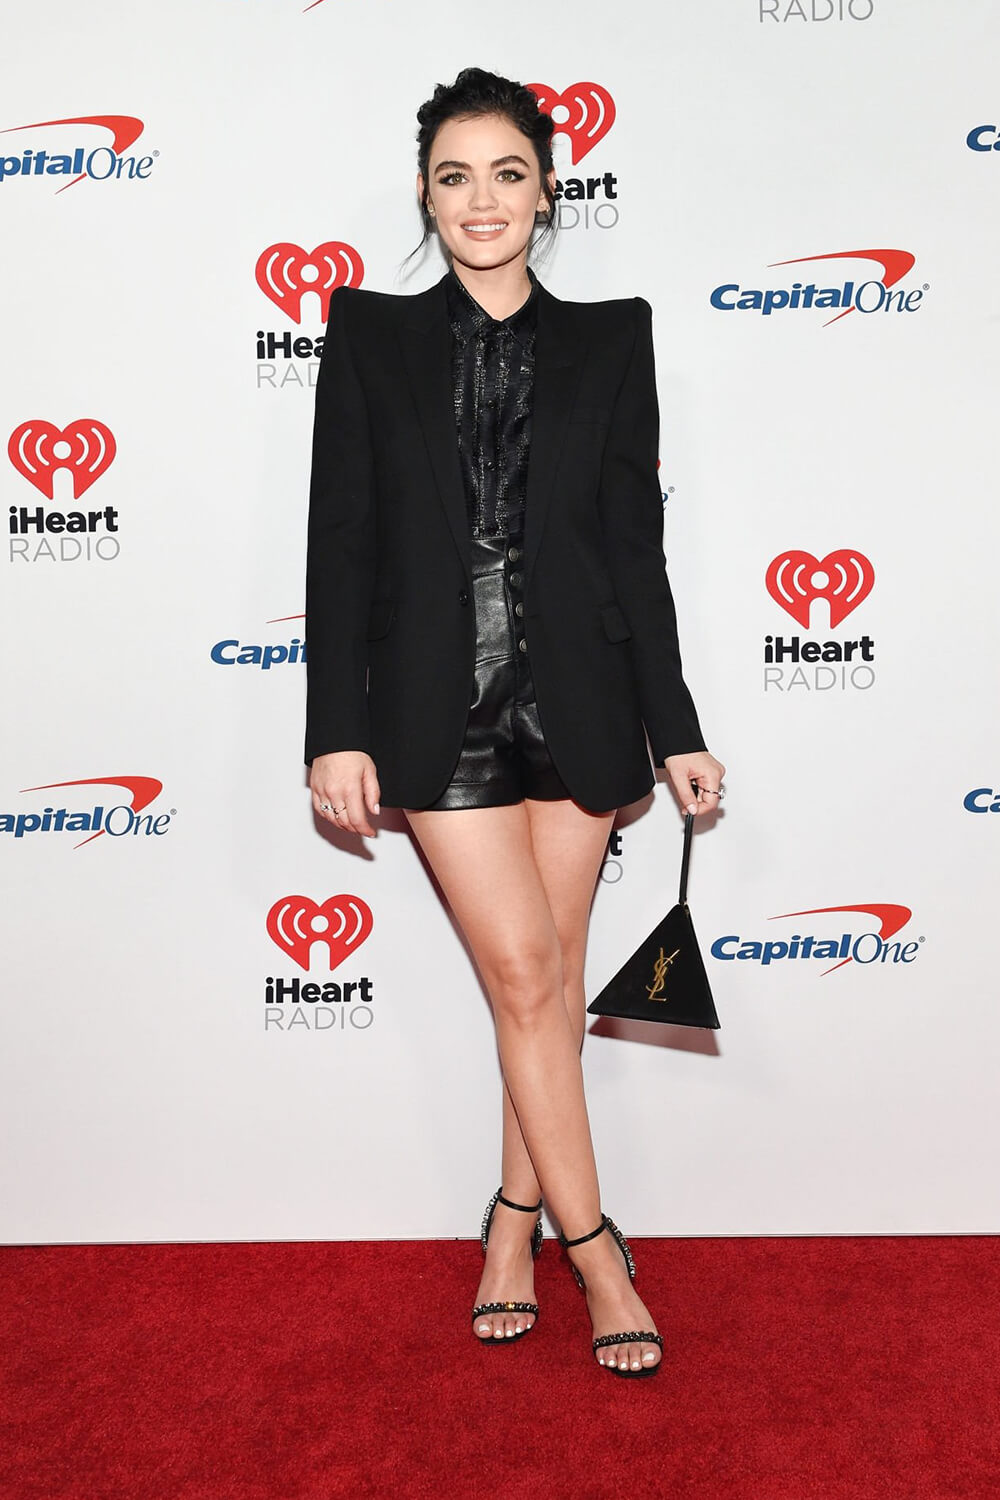 Lucy Hale attends iHeartRadio Music Festival